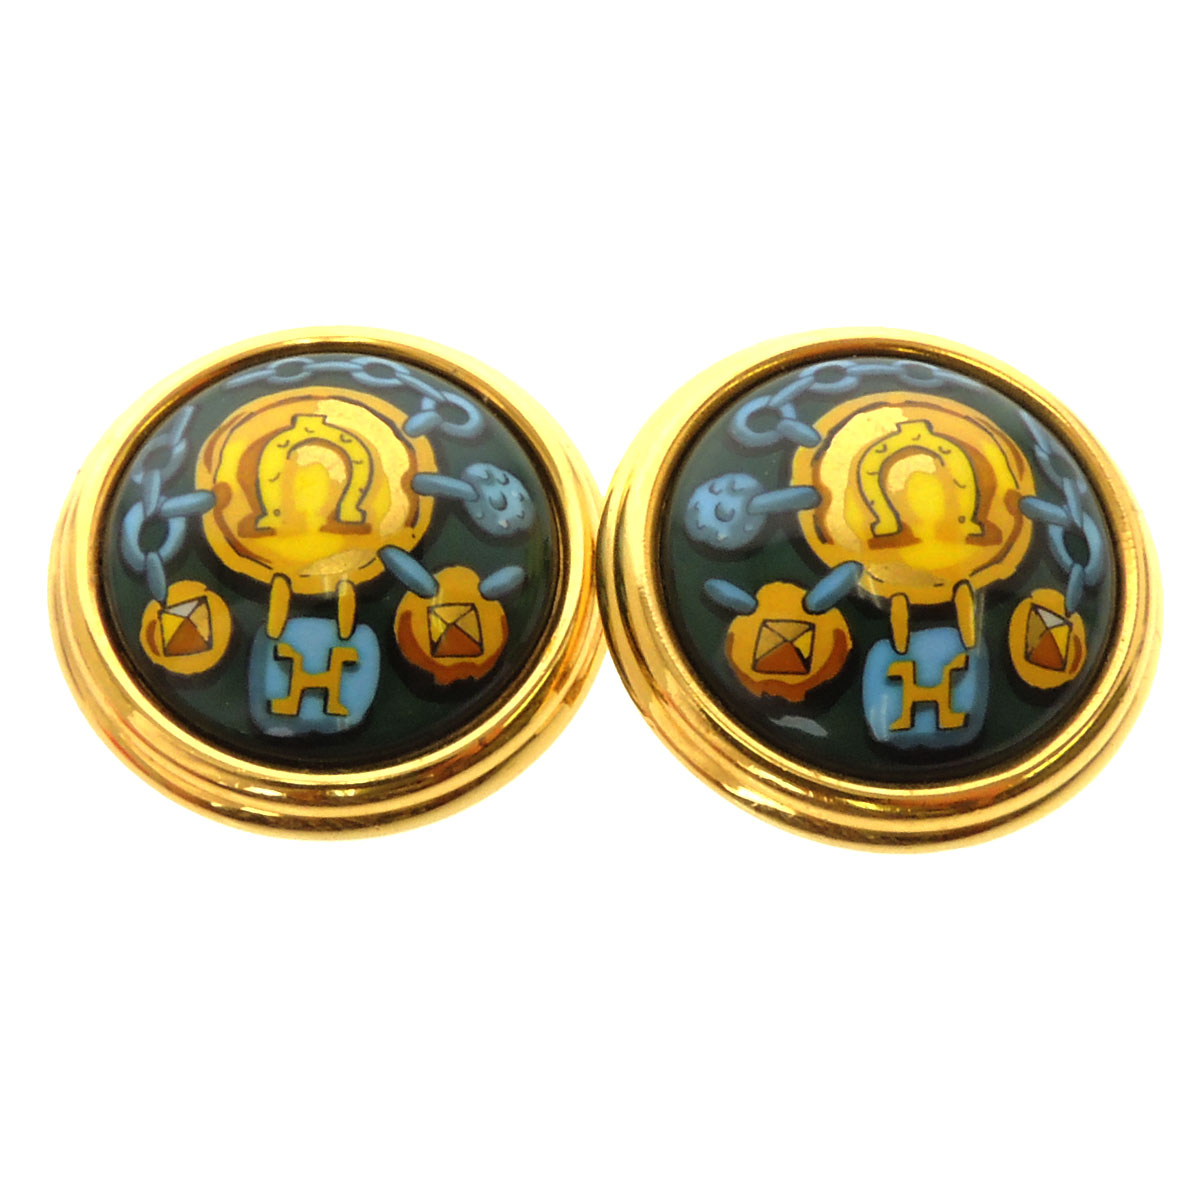 HERMES Horseshoe motif earrings women's